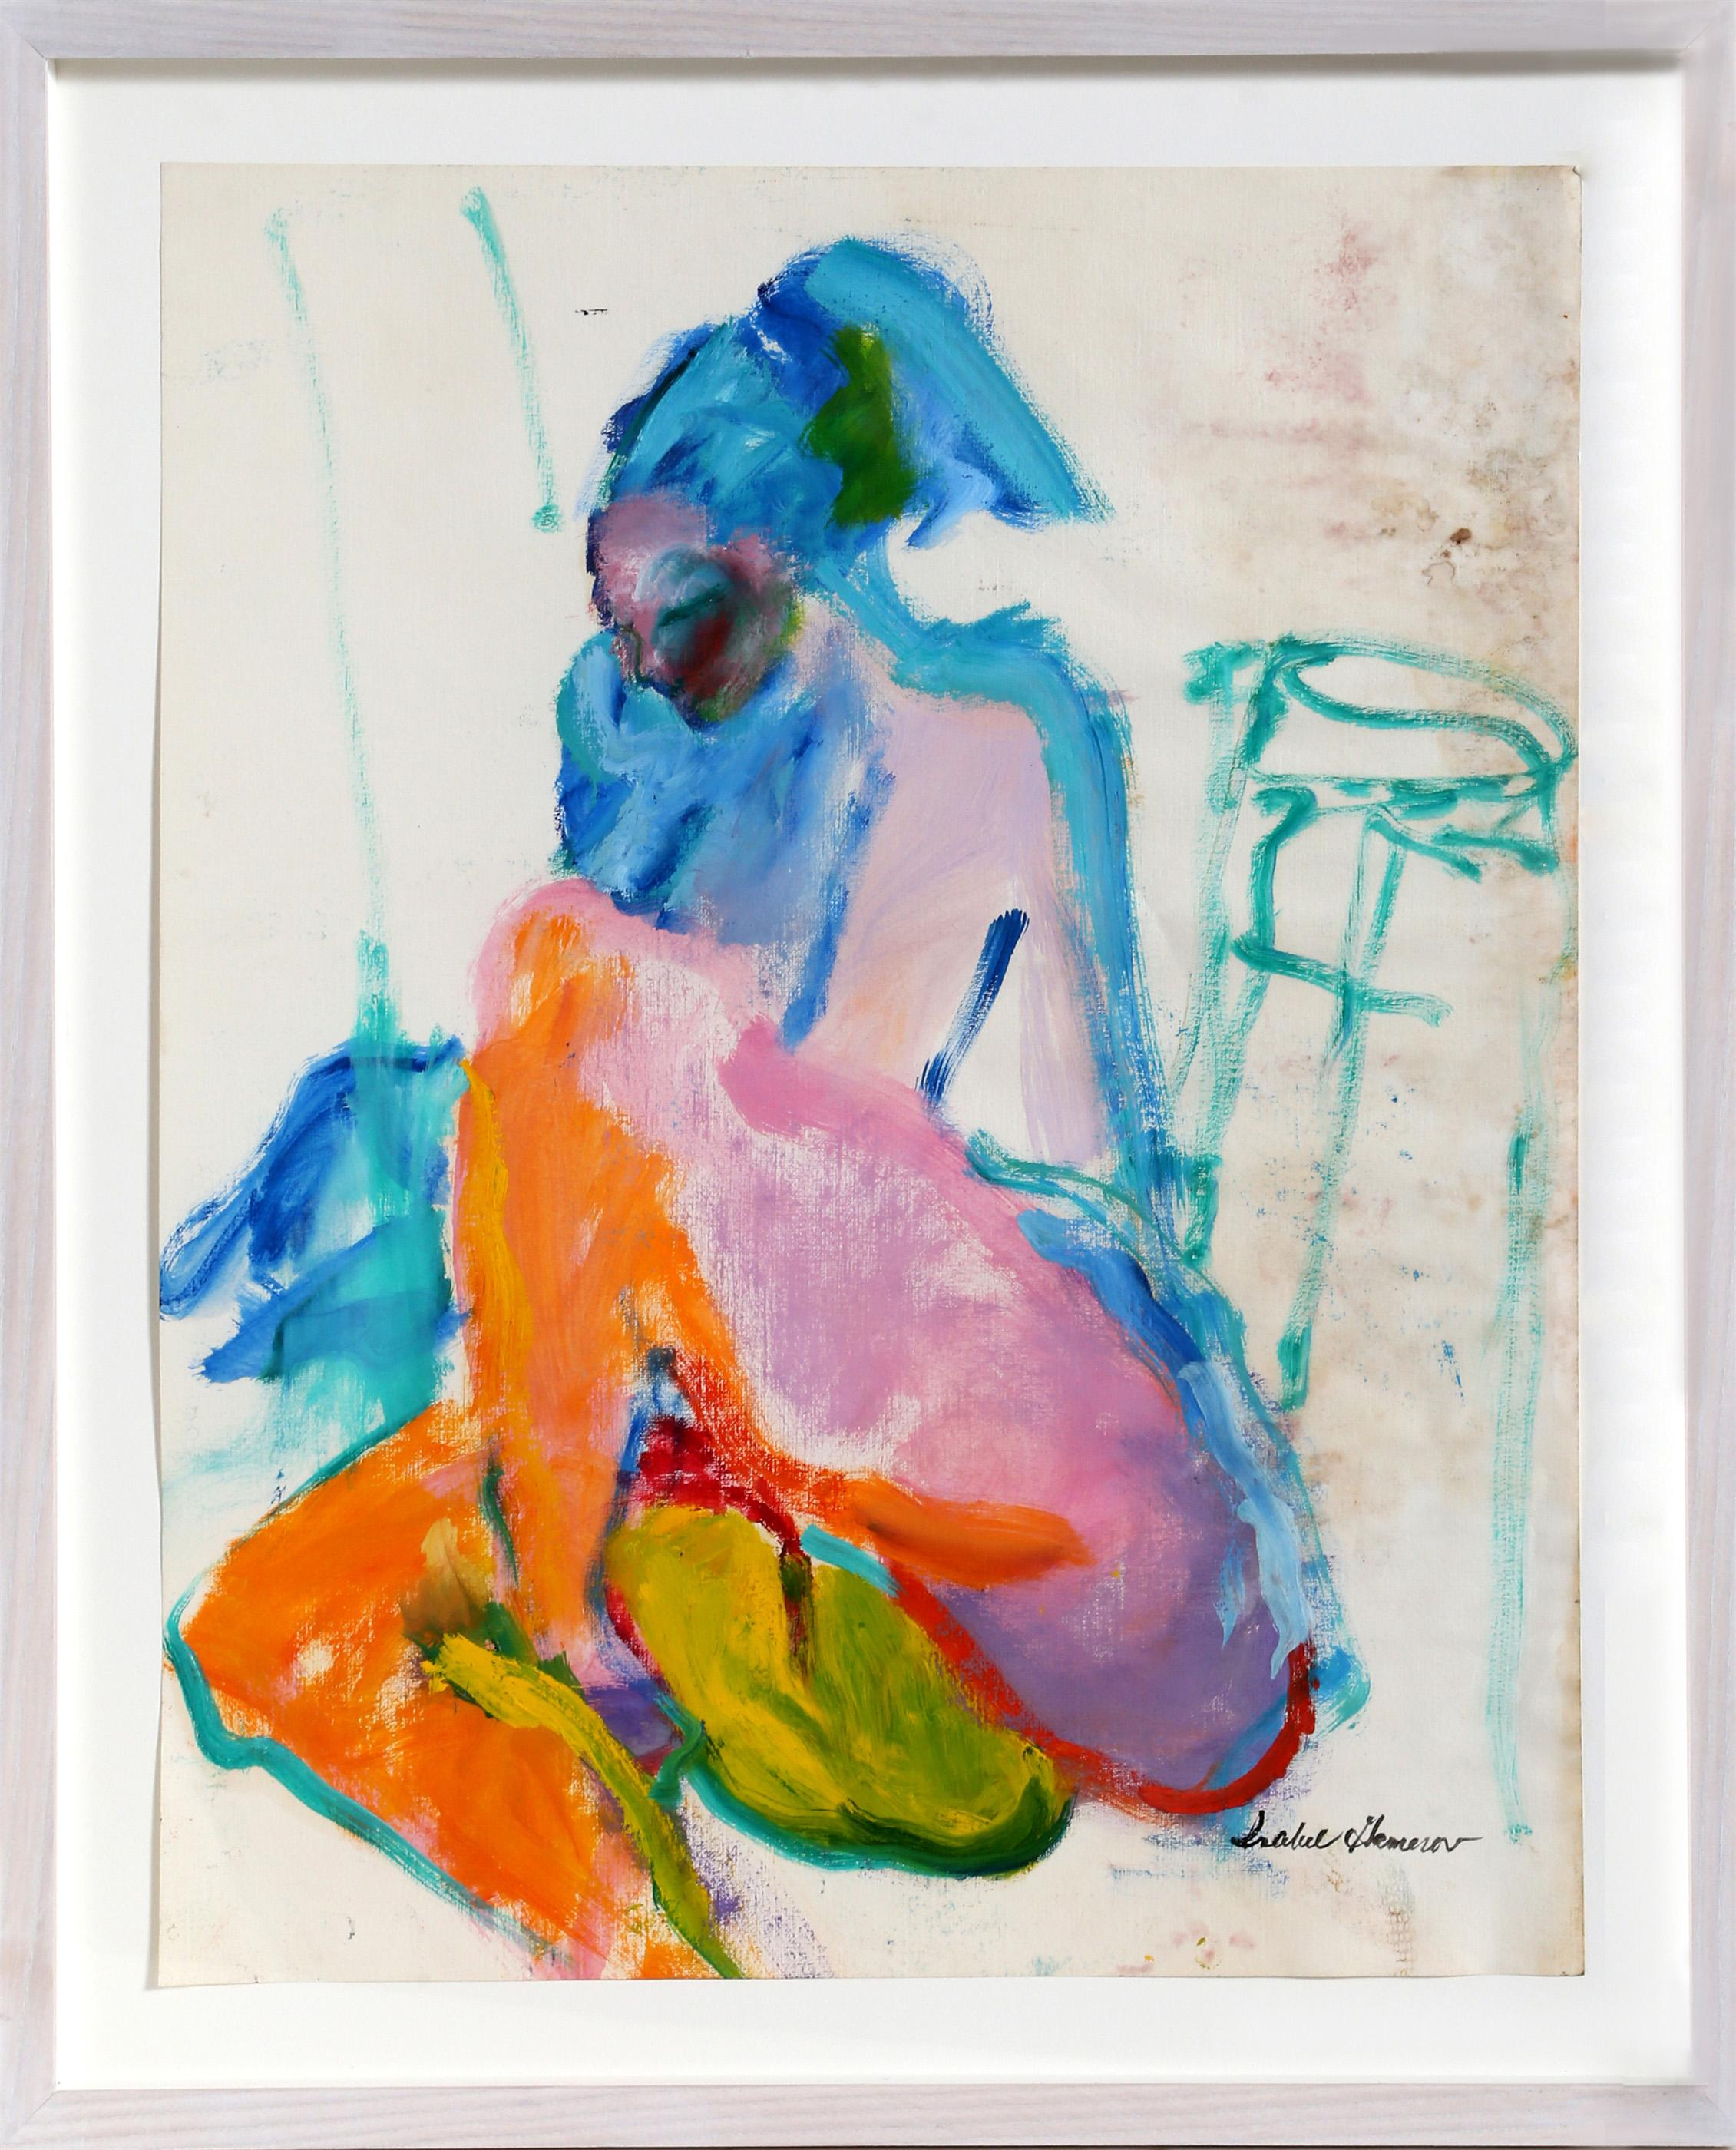 Isabel Gamerov, Untitled - Seated Nude, Gouache Drawing